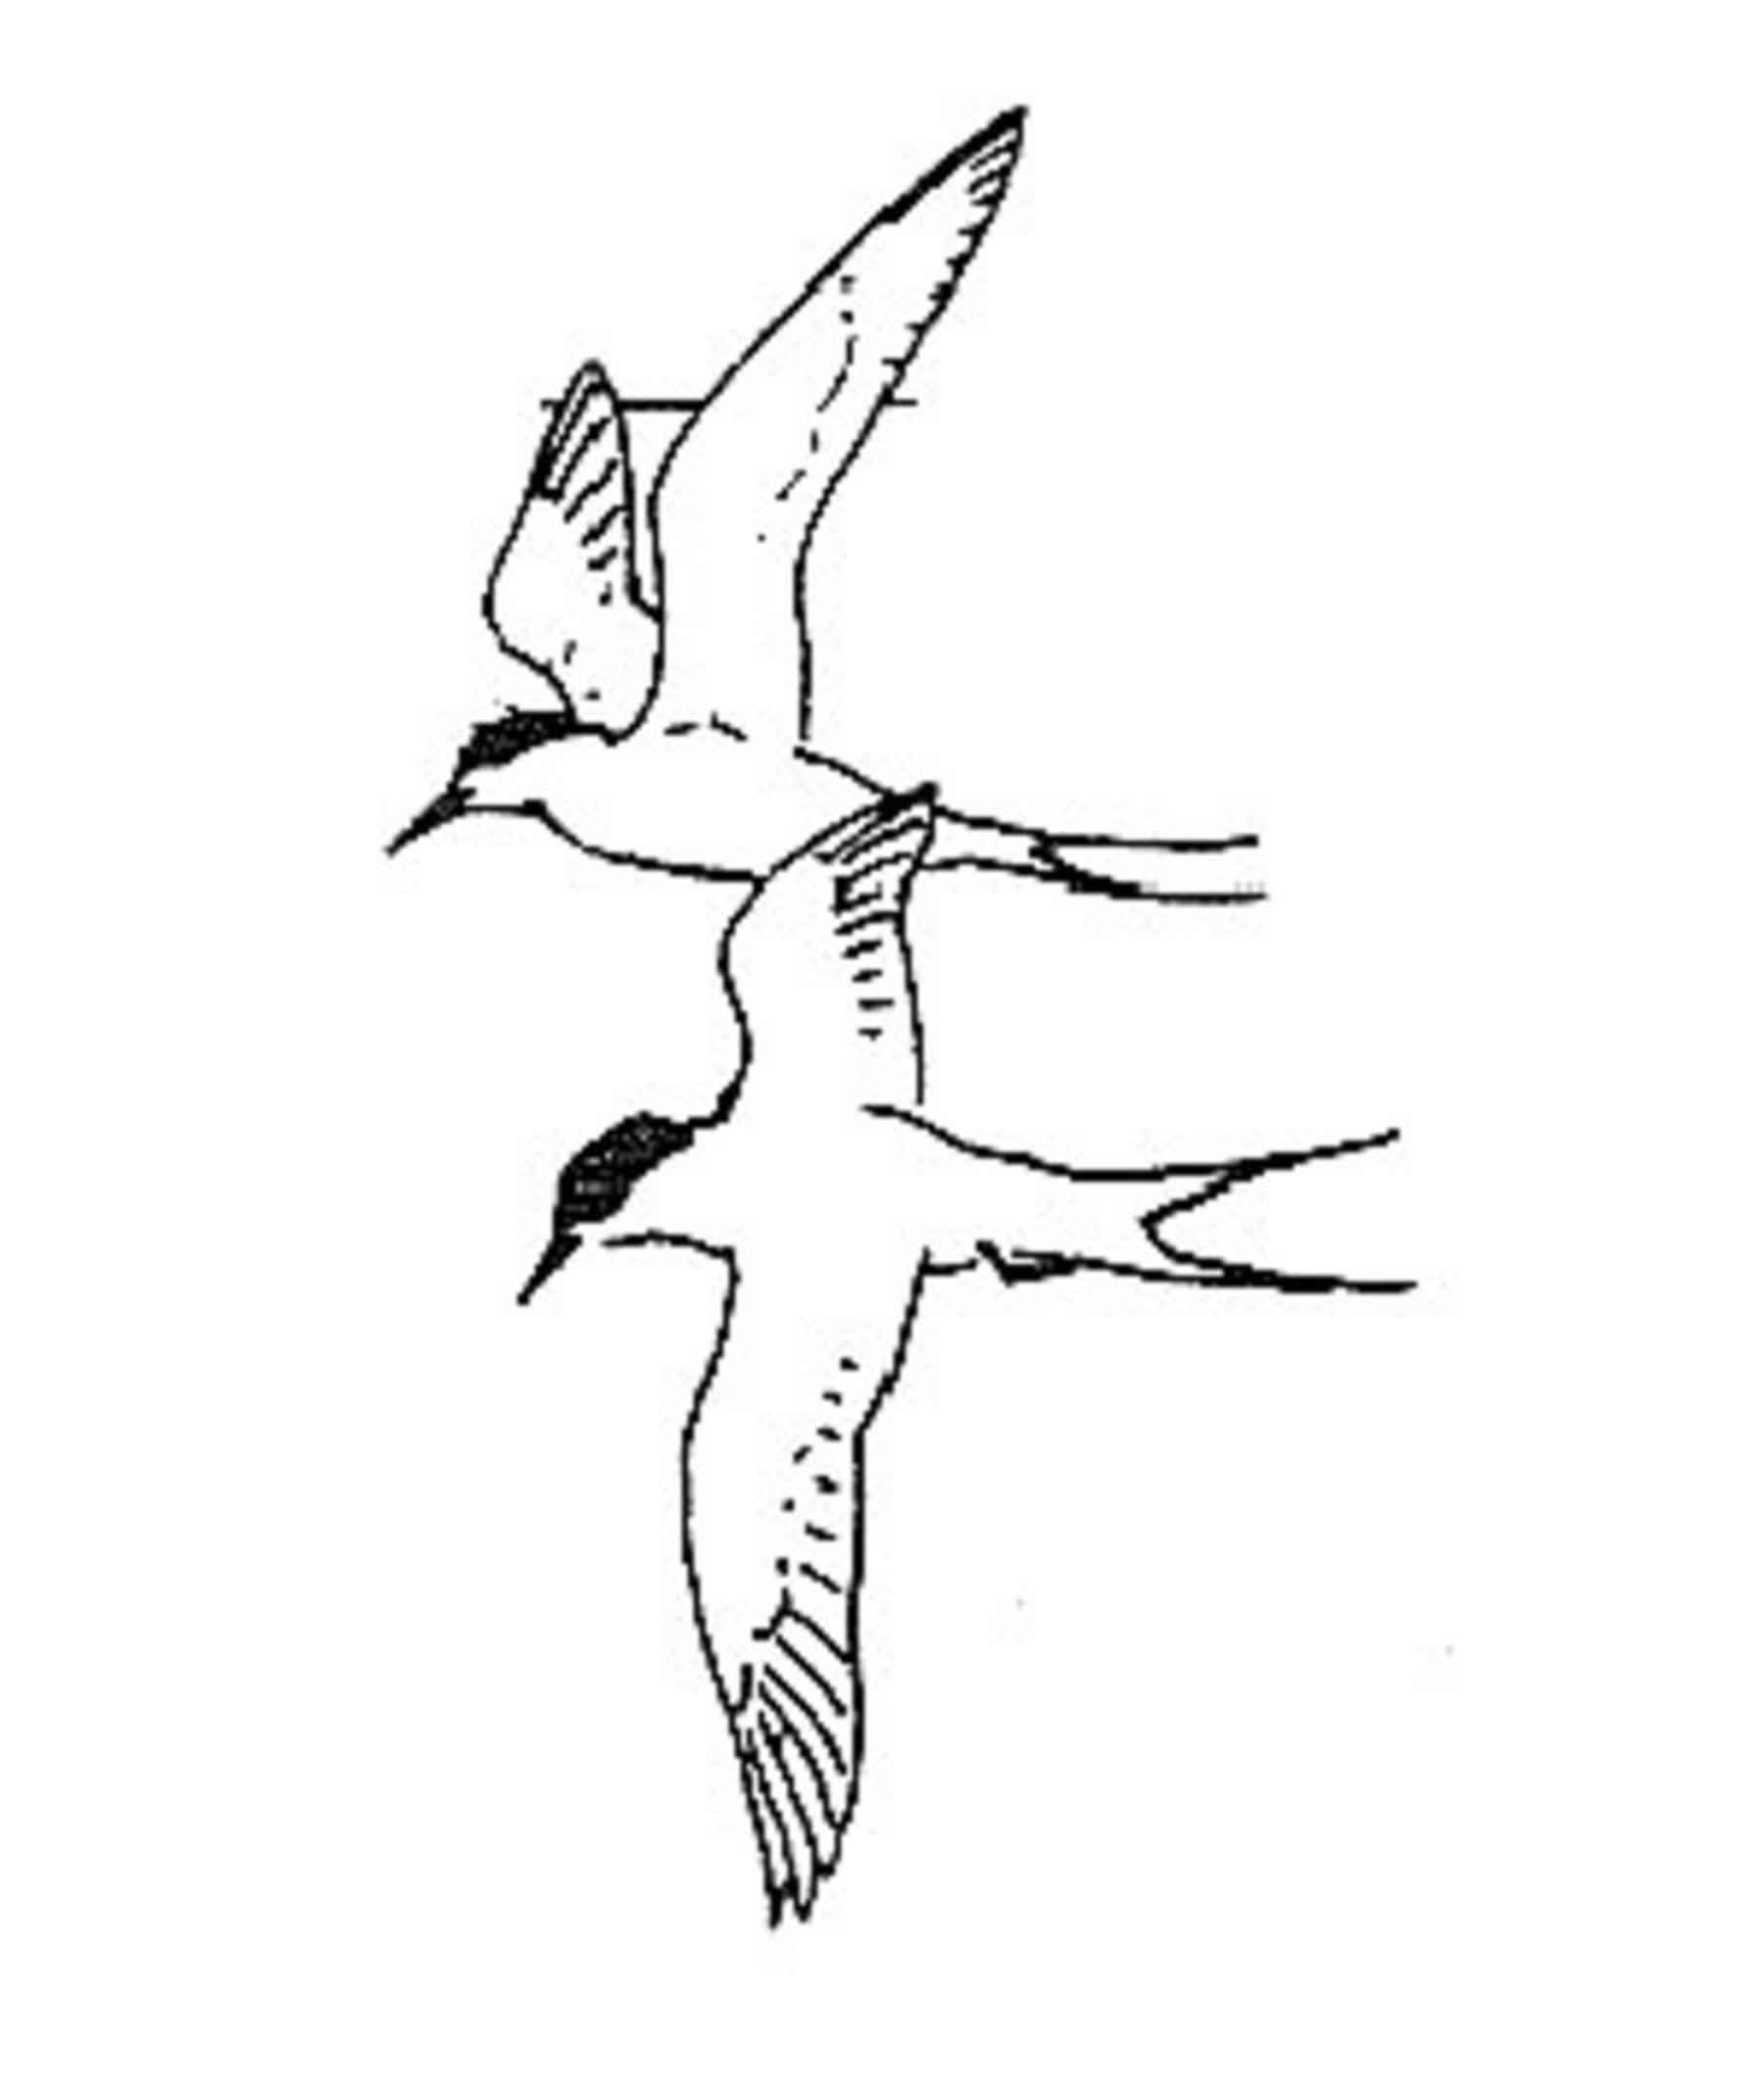 Line Art Black And White : File black and white line art of two arctic terns g